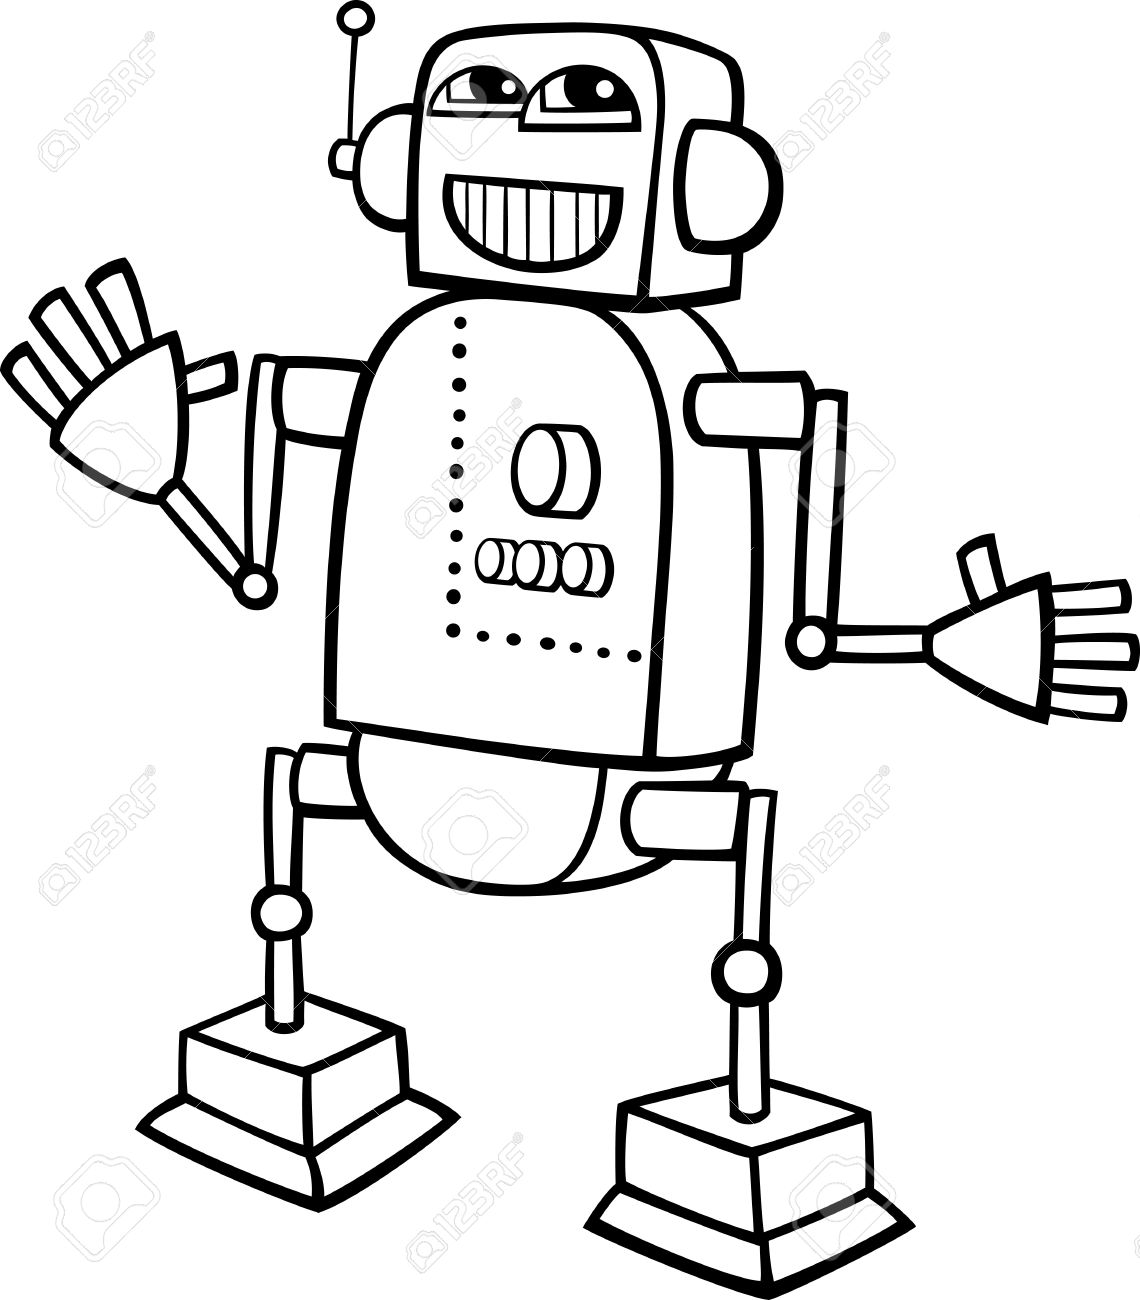 Robot Clipart Black And White 1 Clipart Station